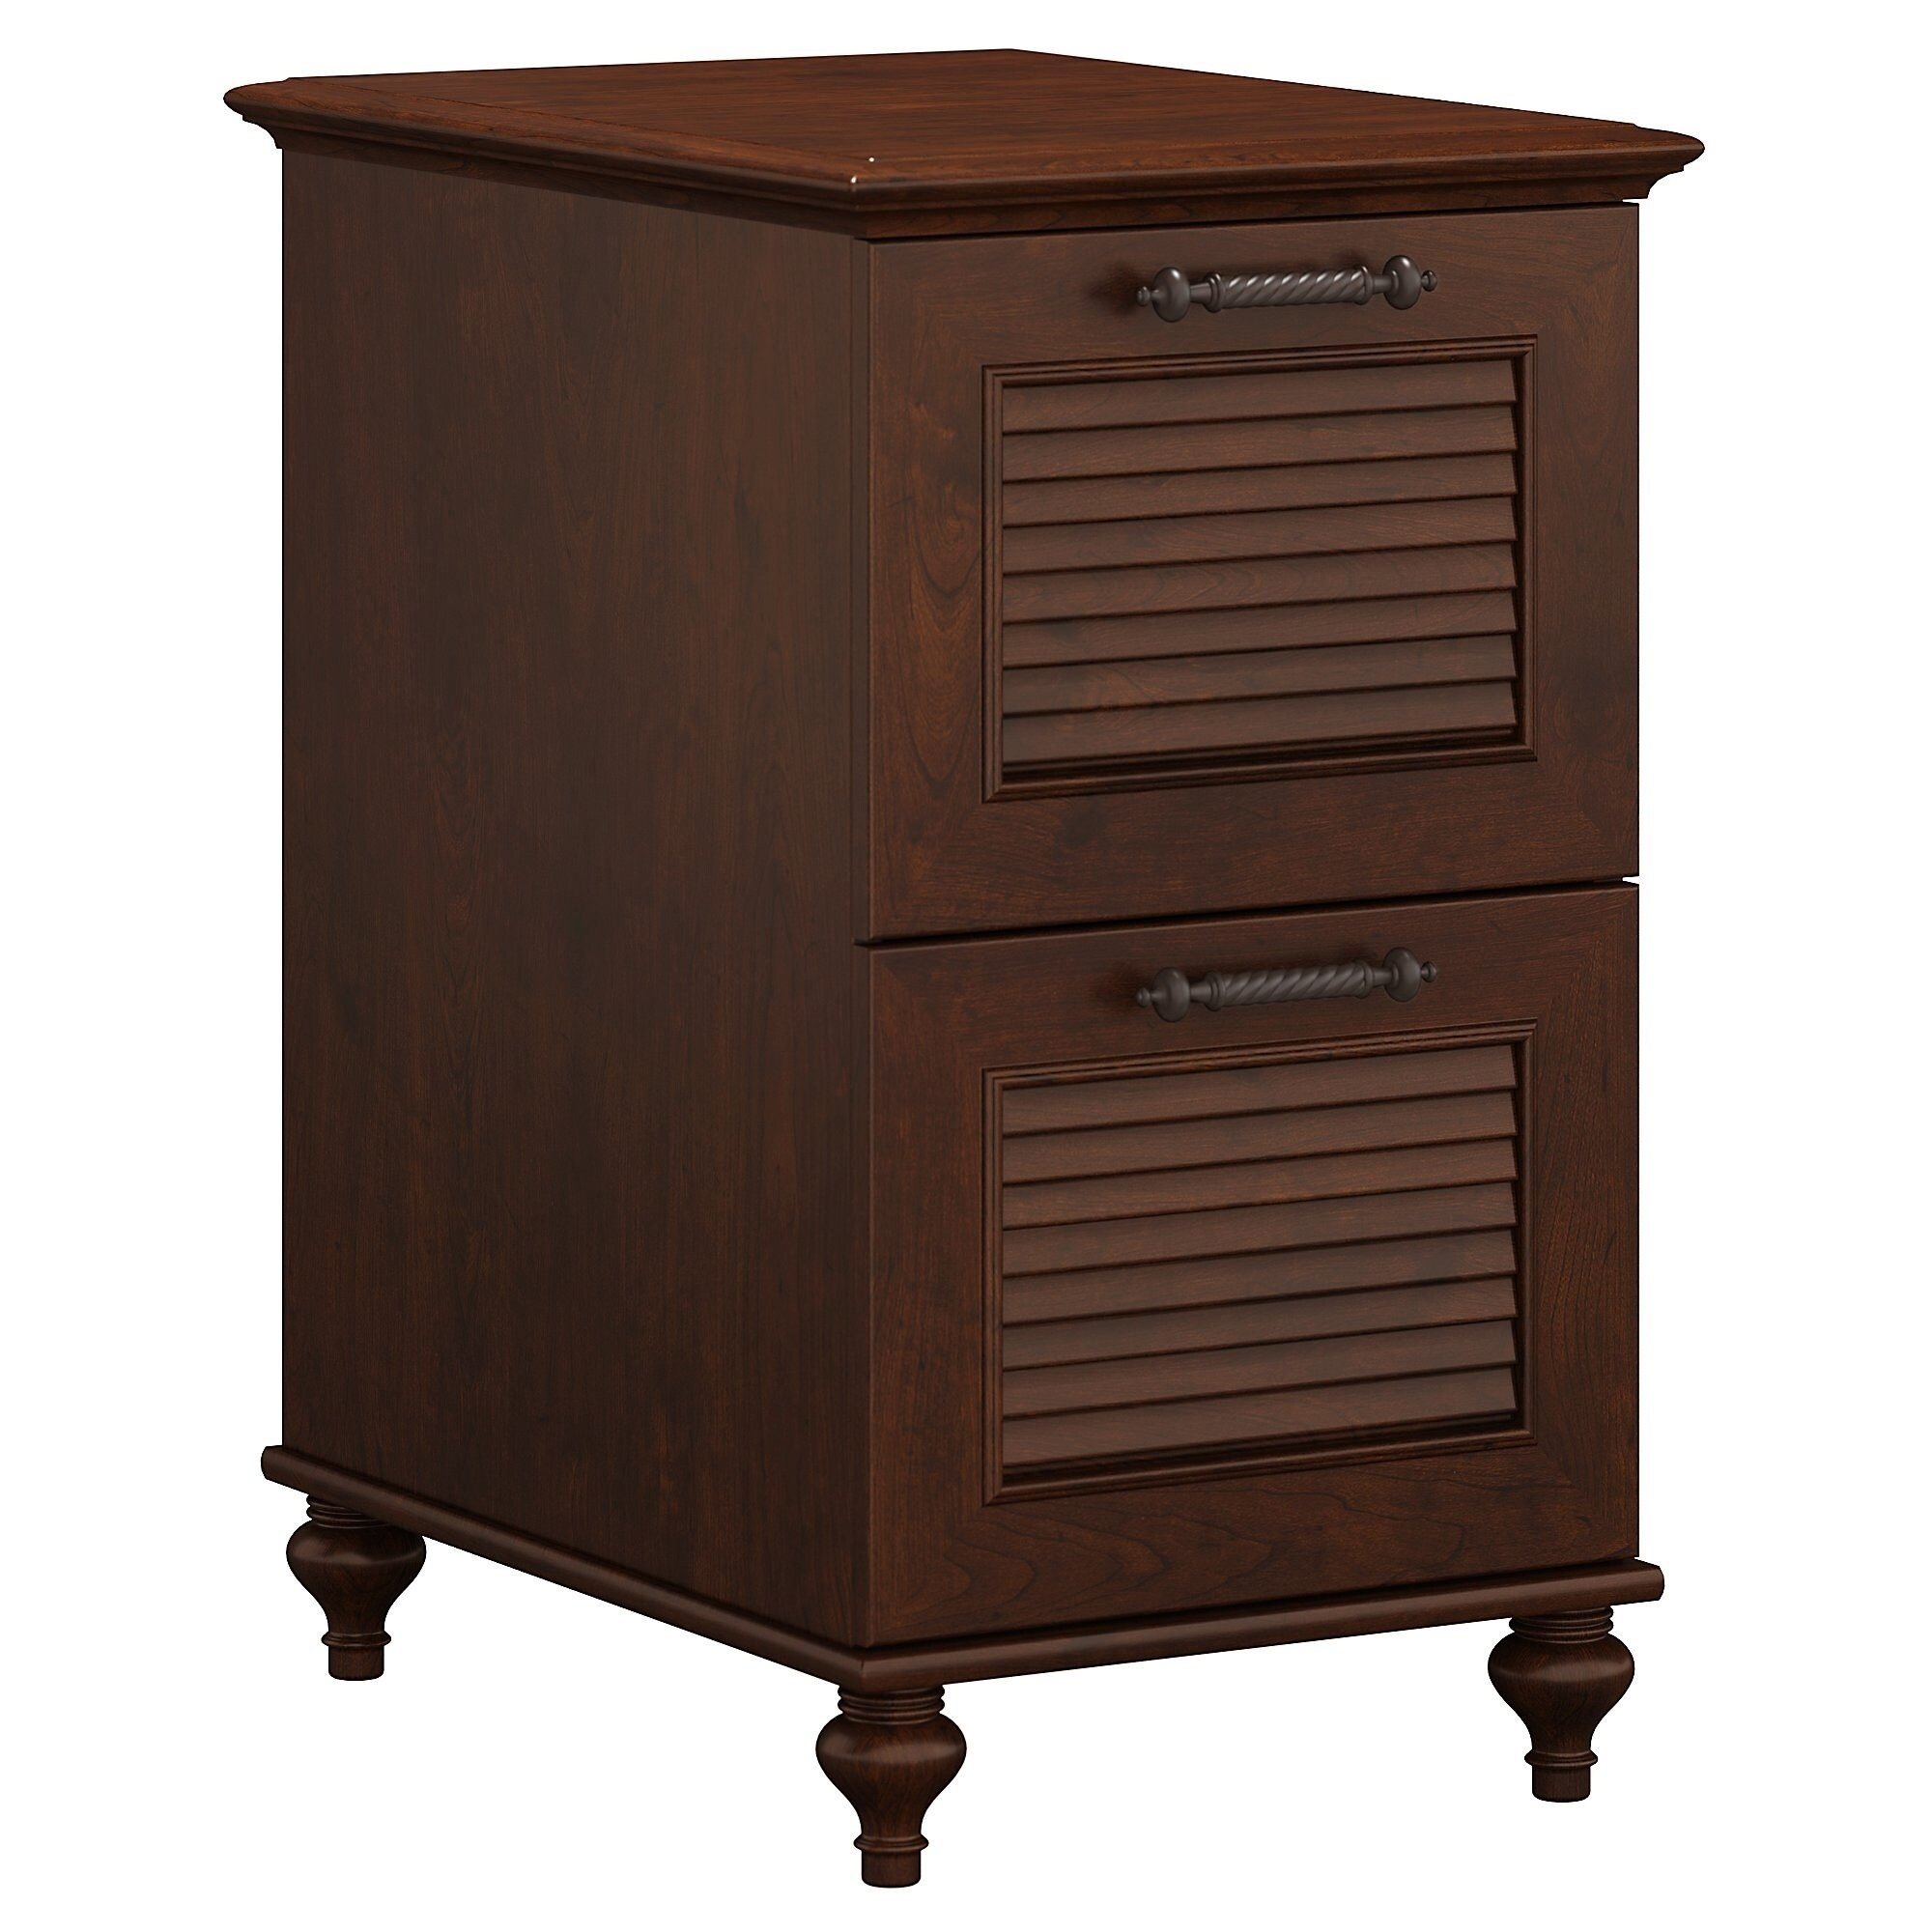 Kathy Ireland Office Volcano Dusk 2 Drawer File Cabinet In Cherry Free Shipping Today 14434999